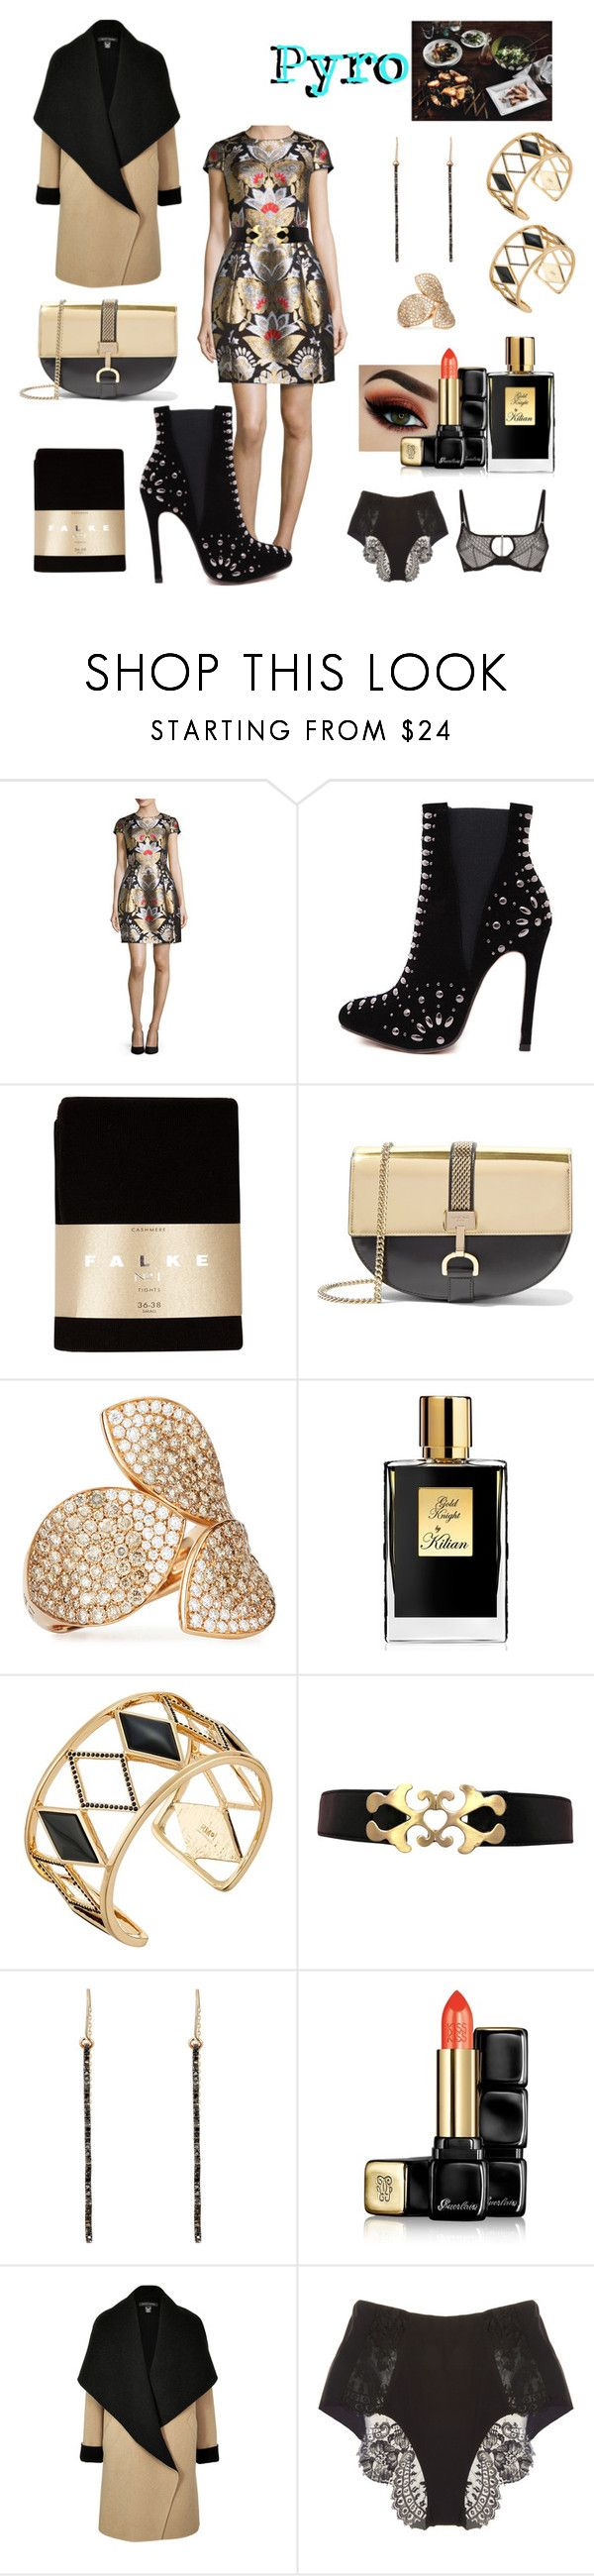 """""""p/ro"""" by difracceliglo ❤ liked on Polyvore featuring Ted Baker, WithChic, Falke, Lanvin, Pasquale Bruni, Kilian, Rebecca Minkoff, TILDA BIEHN, Guerlain and Ralph Lauren Black Label"""